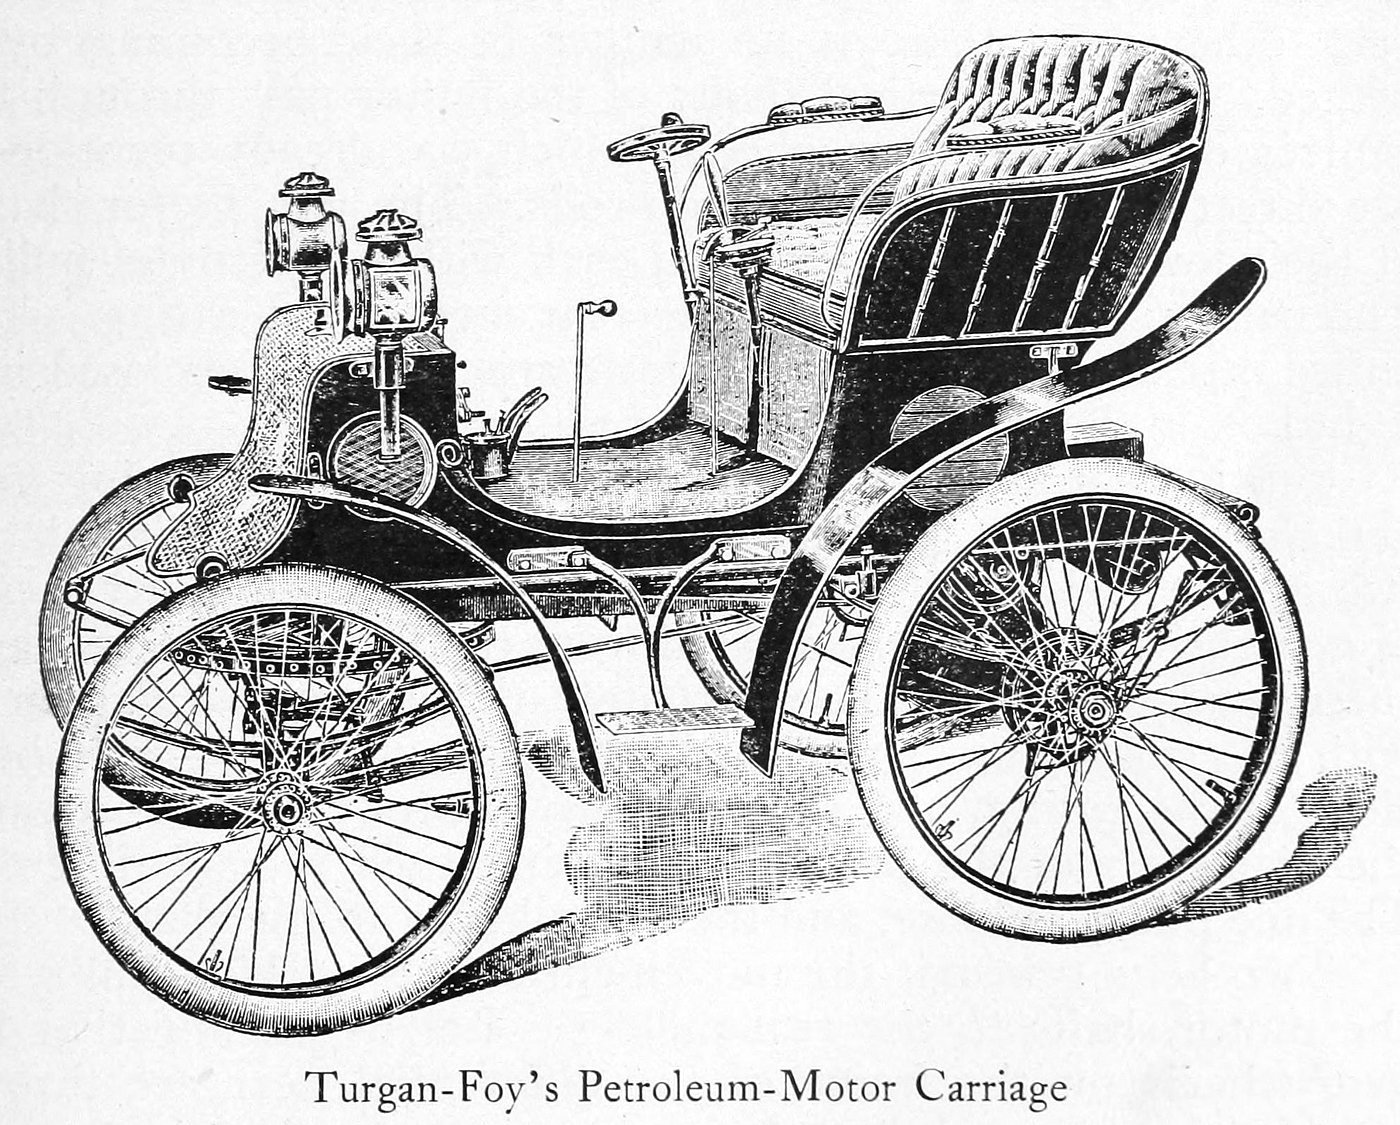 Turgan-Foy petroleum motor carriage (1899)